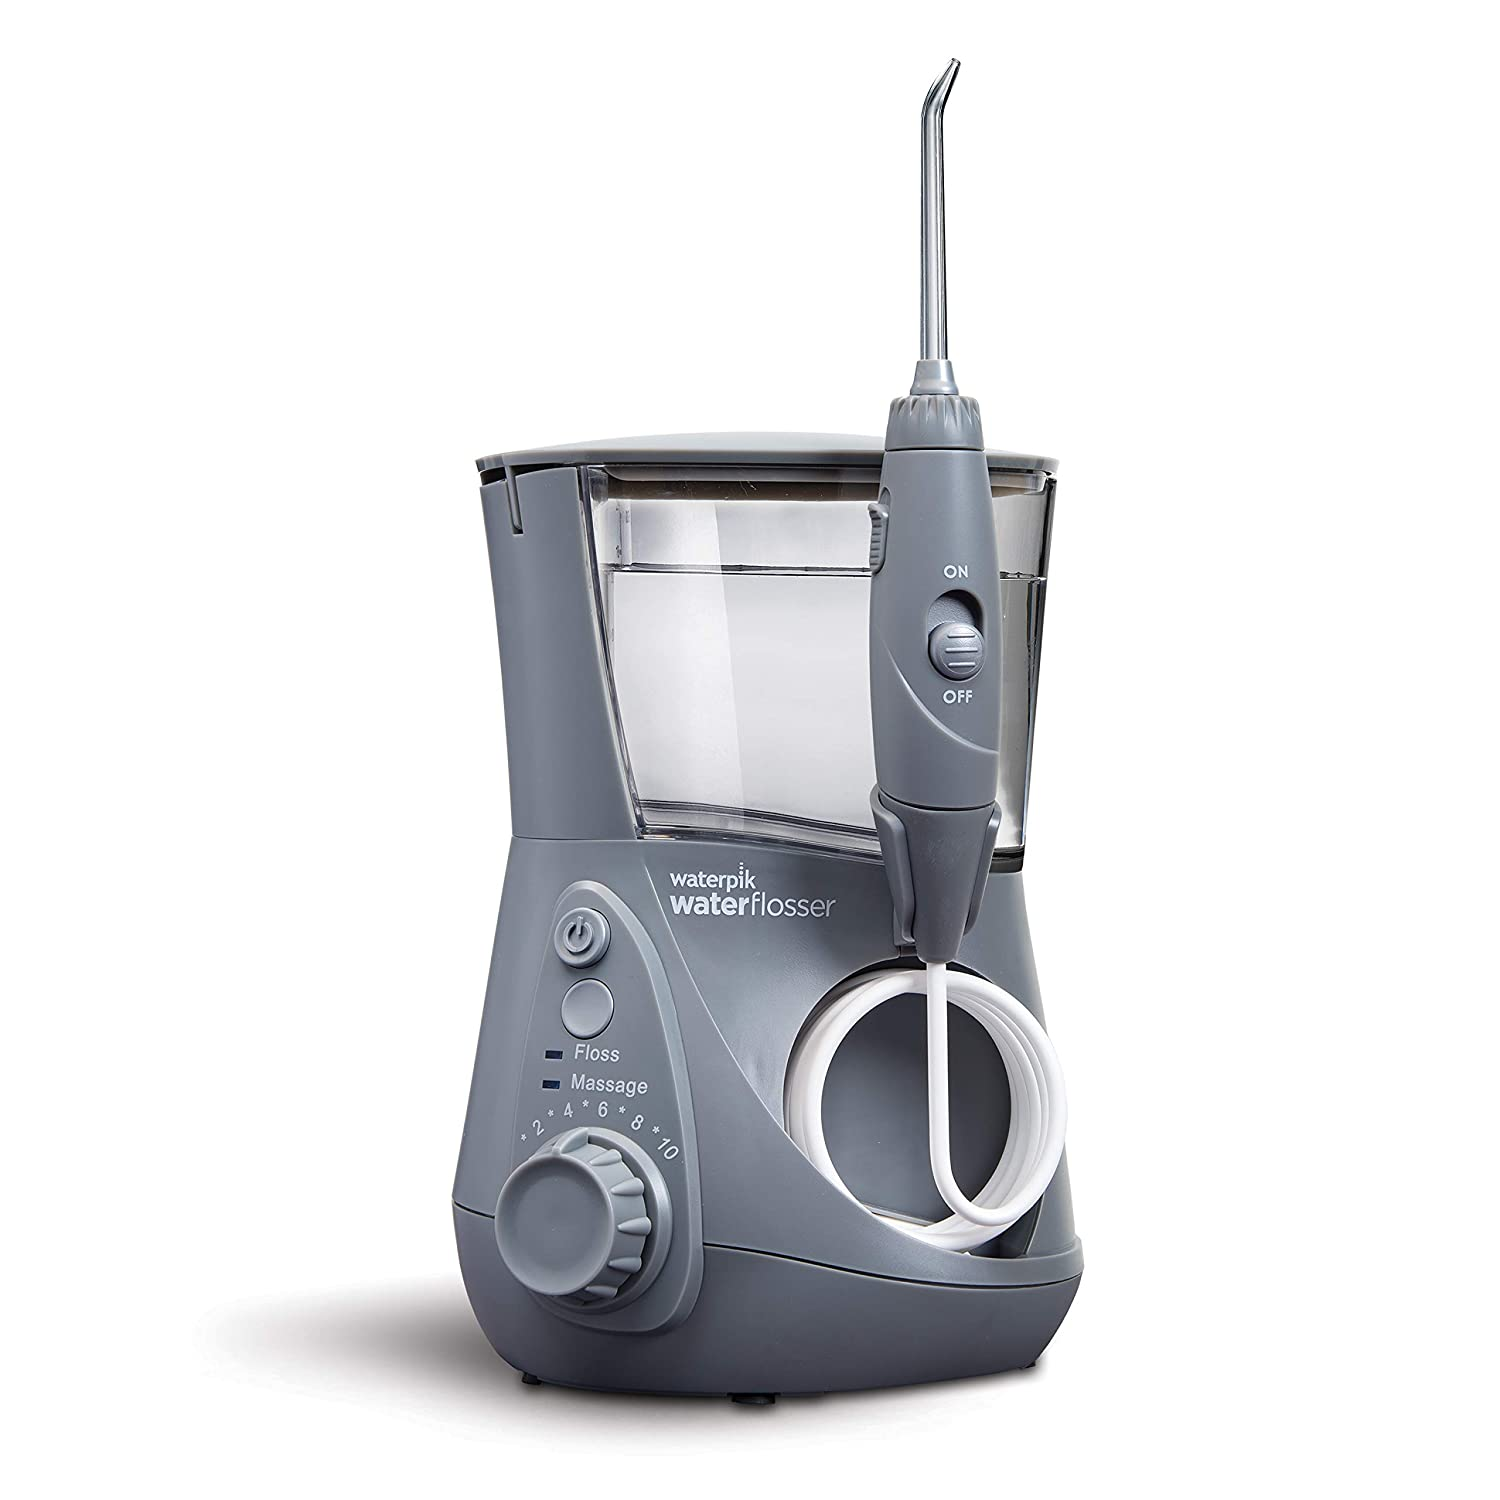 Waterpik WP-667 Water Flosser Electric Dental Countertop Professional Oral Irrigator For Teeth, Aquarius, Modern Gray